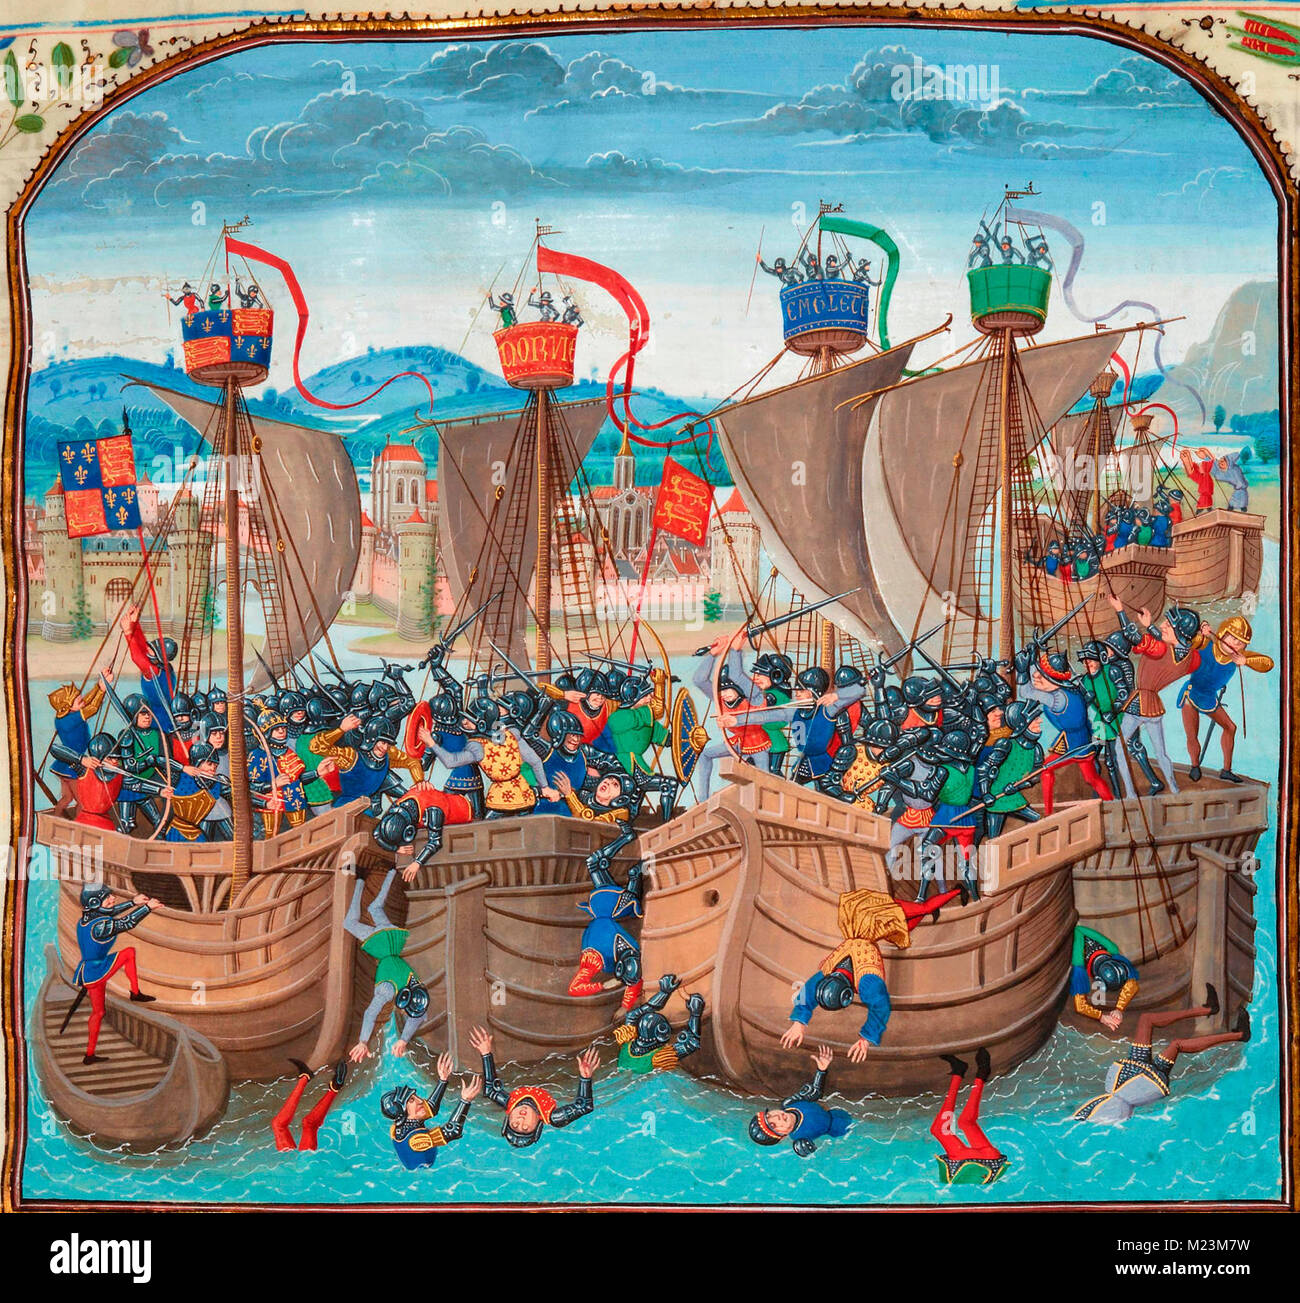 The Battle of Sluys, also called Battle of l'Ecluse, was a sea battle fought on 24 June 1340 as one of the opening - Stock Image